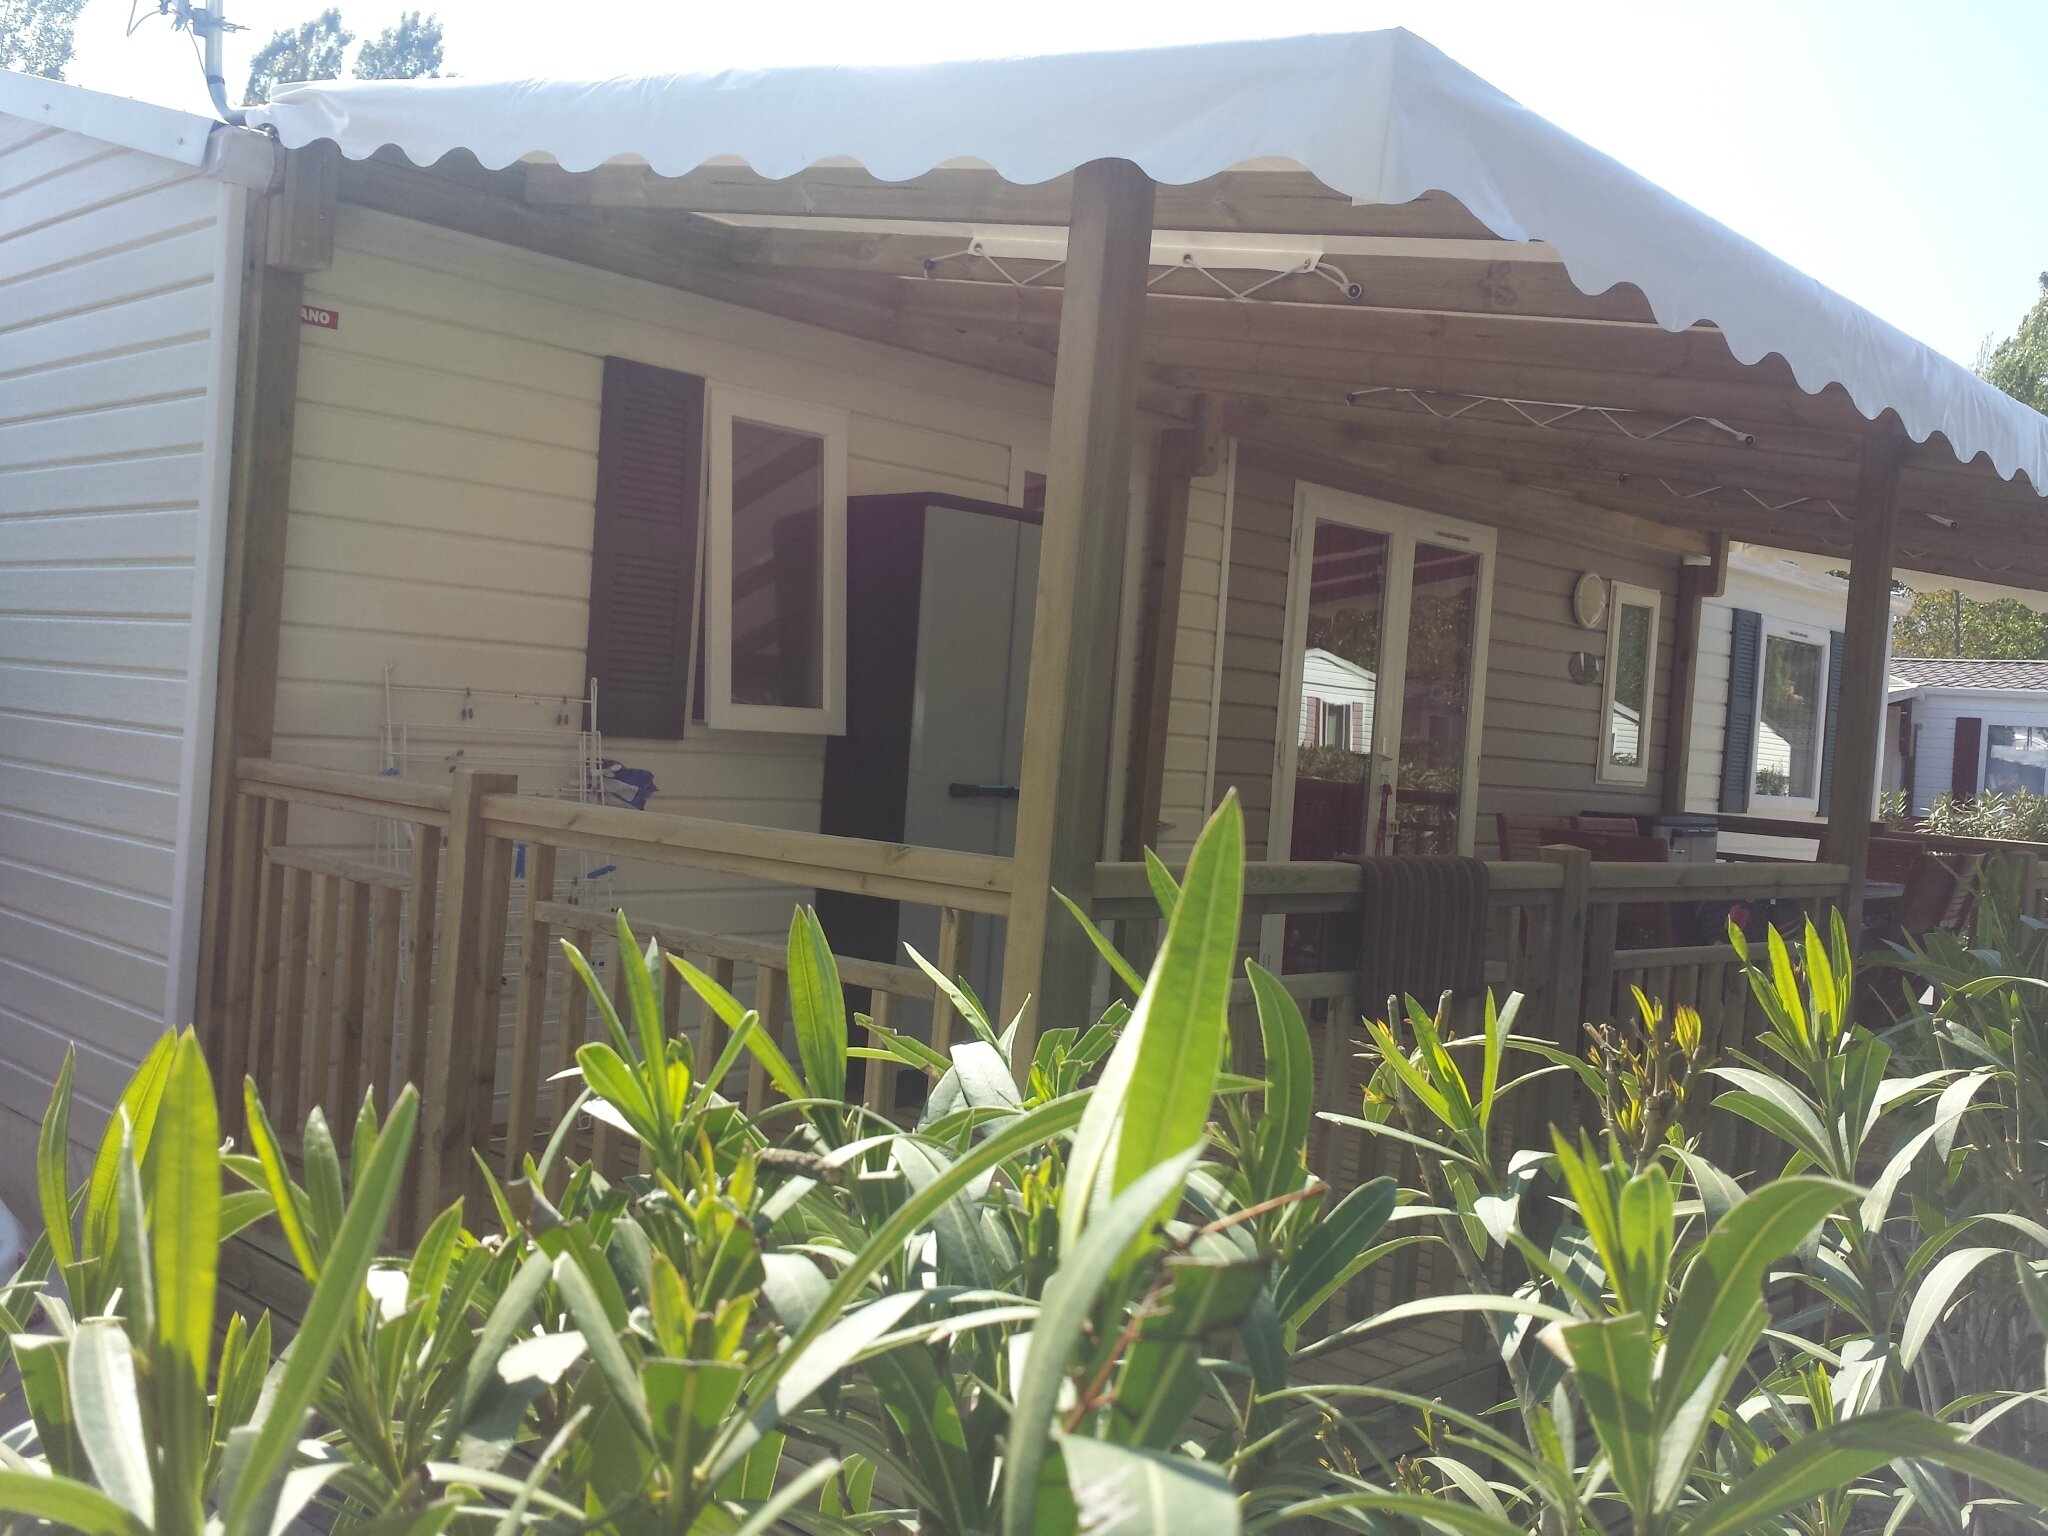 Mobil-home Neuf - 40m² - 3 chambres - LOCATION 2017 OUVERTE